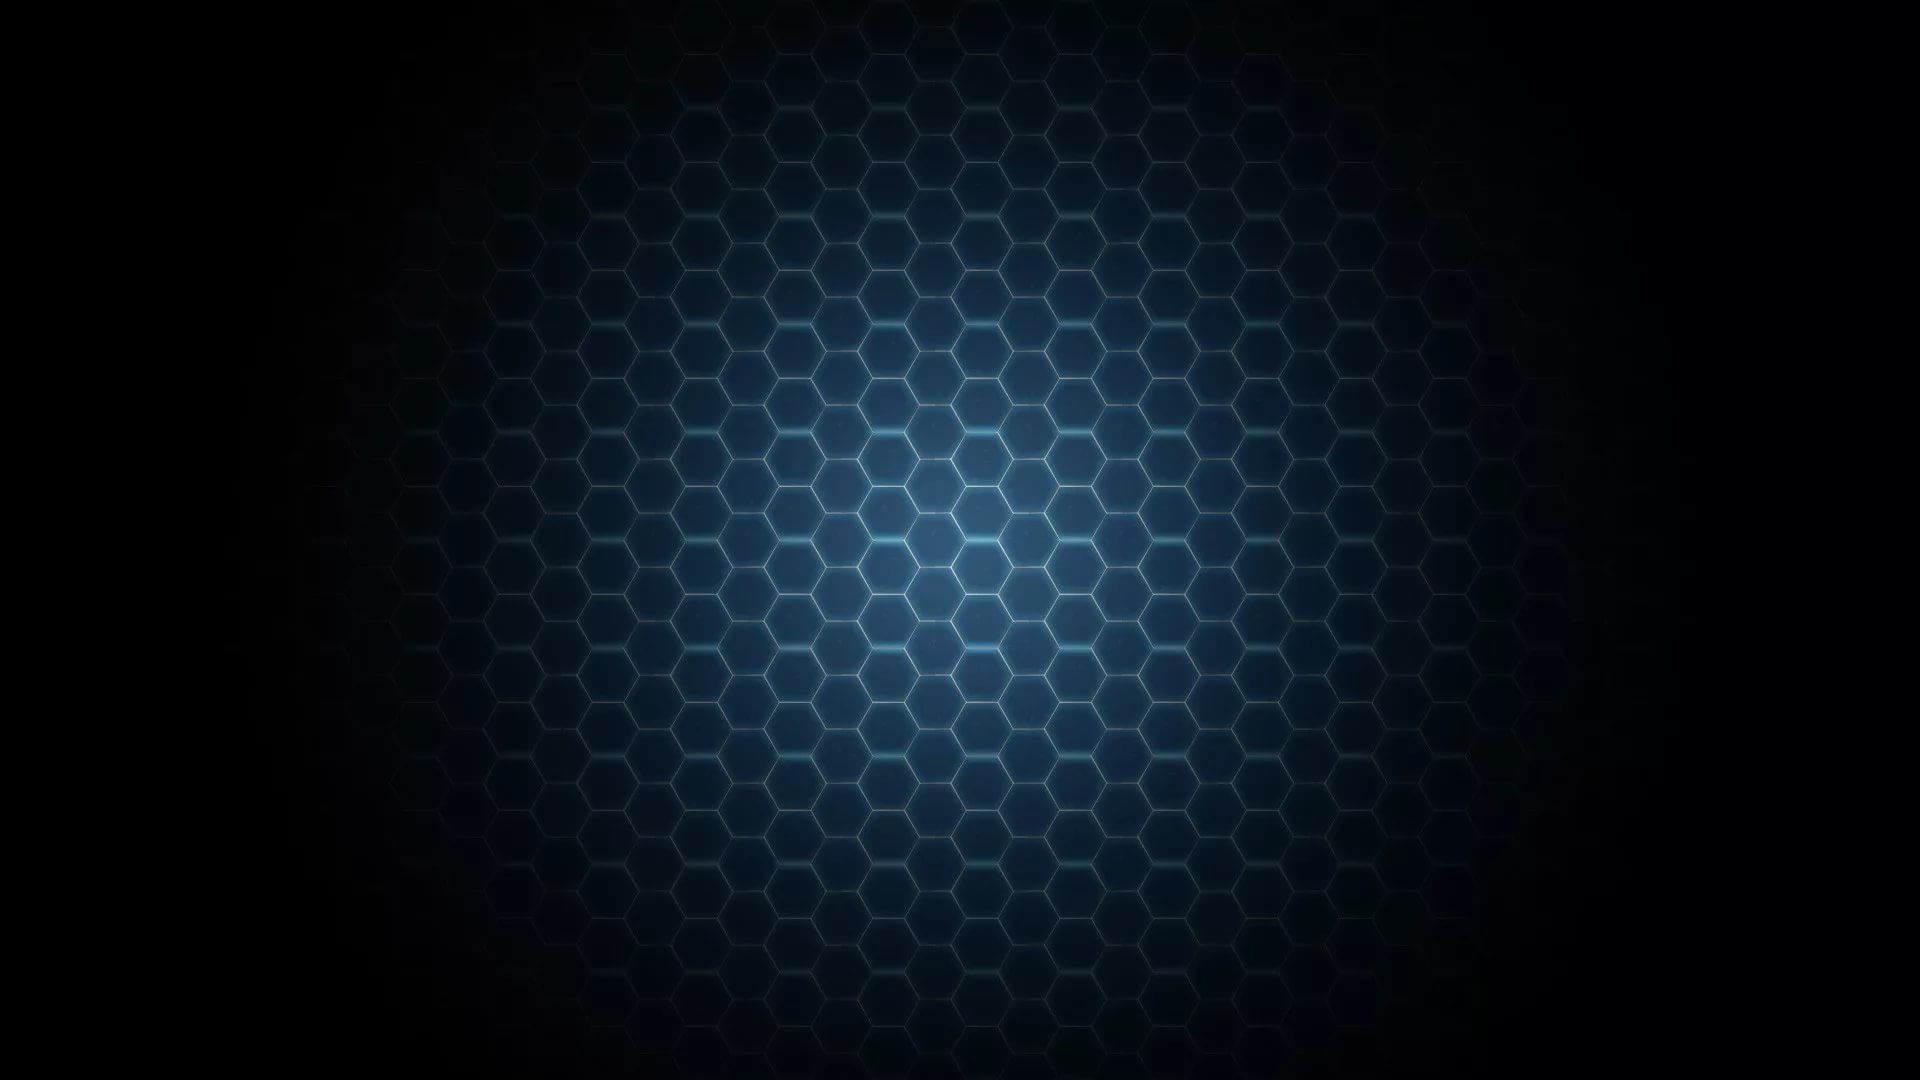 Black And Blue hd wallpaper for laptop